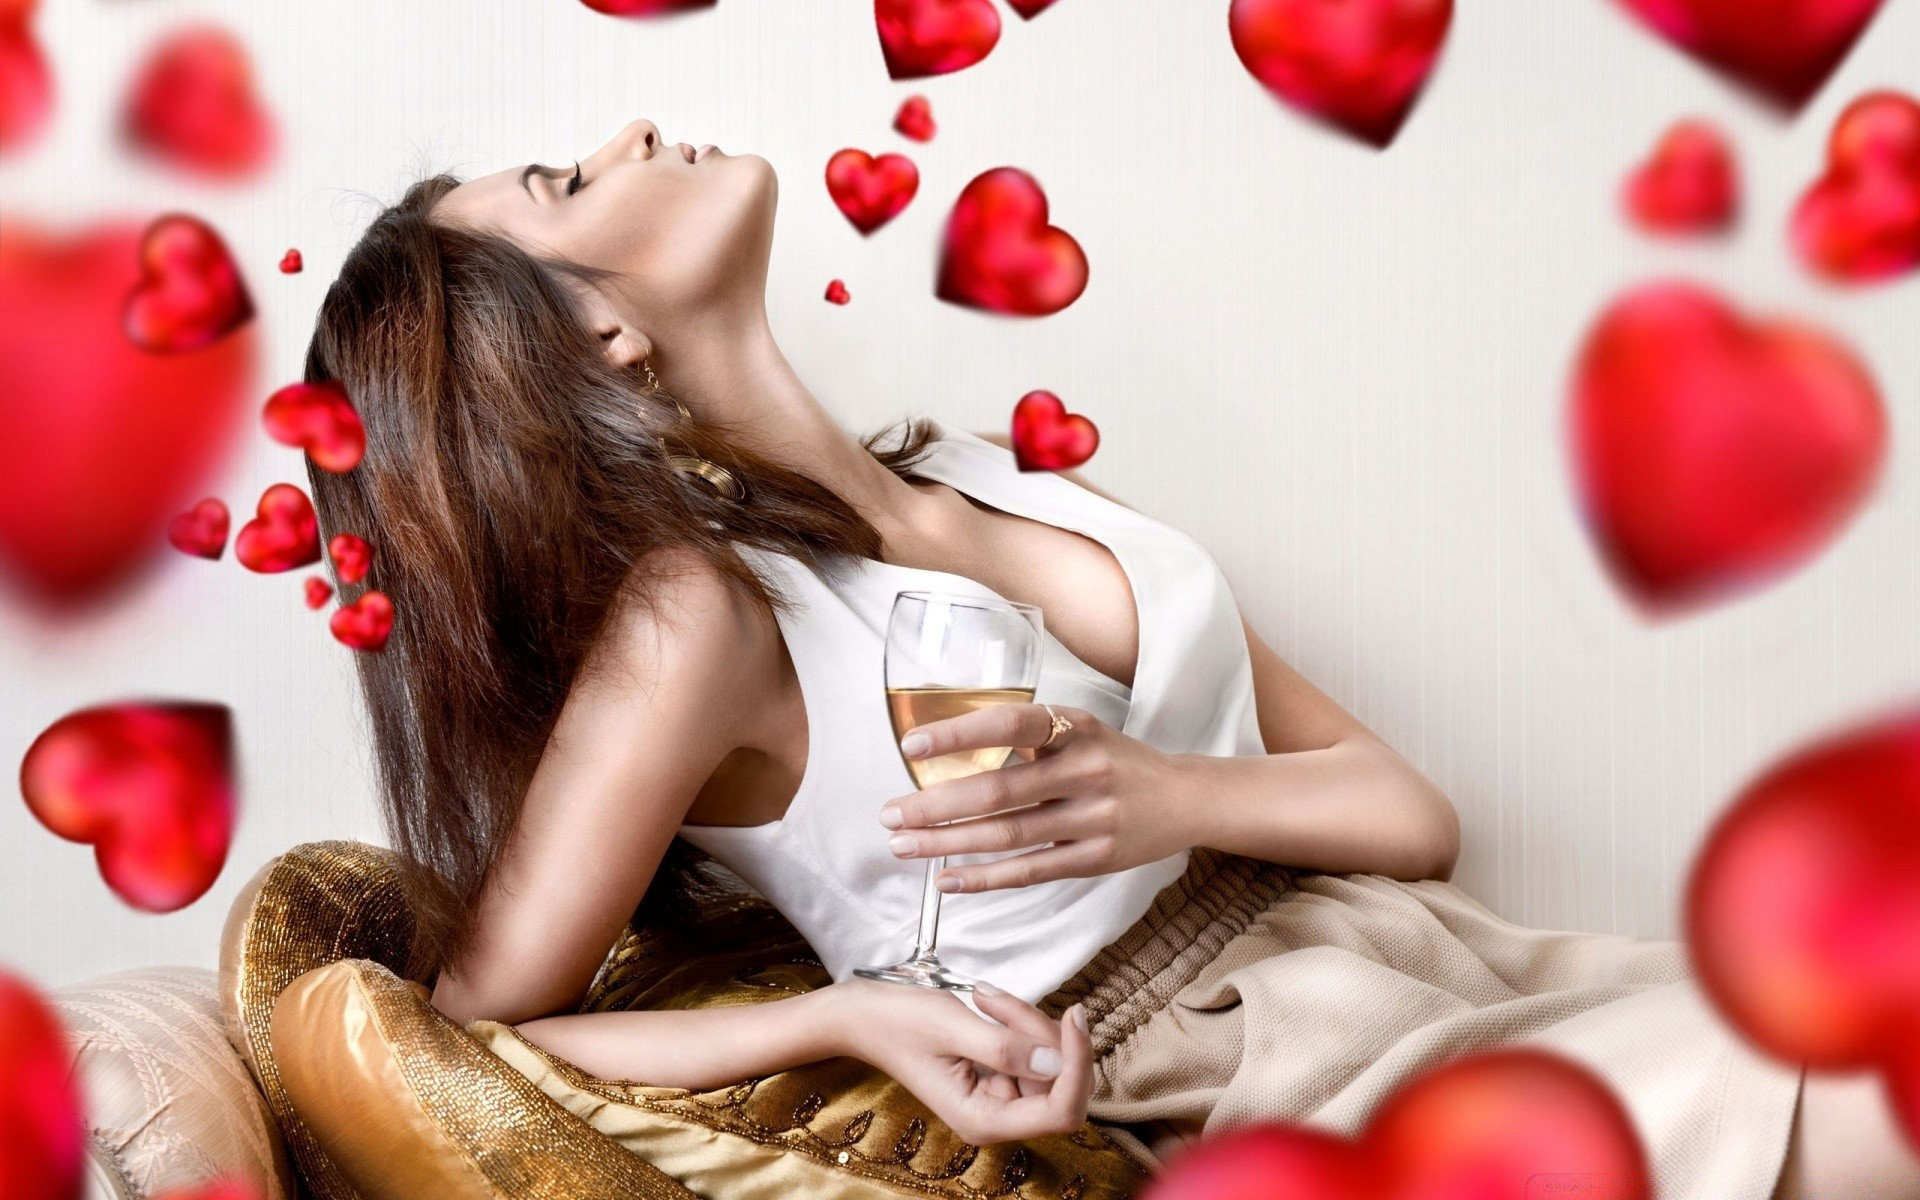 valentine s day love woman romance romantic girl sexy beautiful fashion christmas cute model young pretty heart